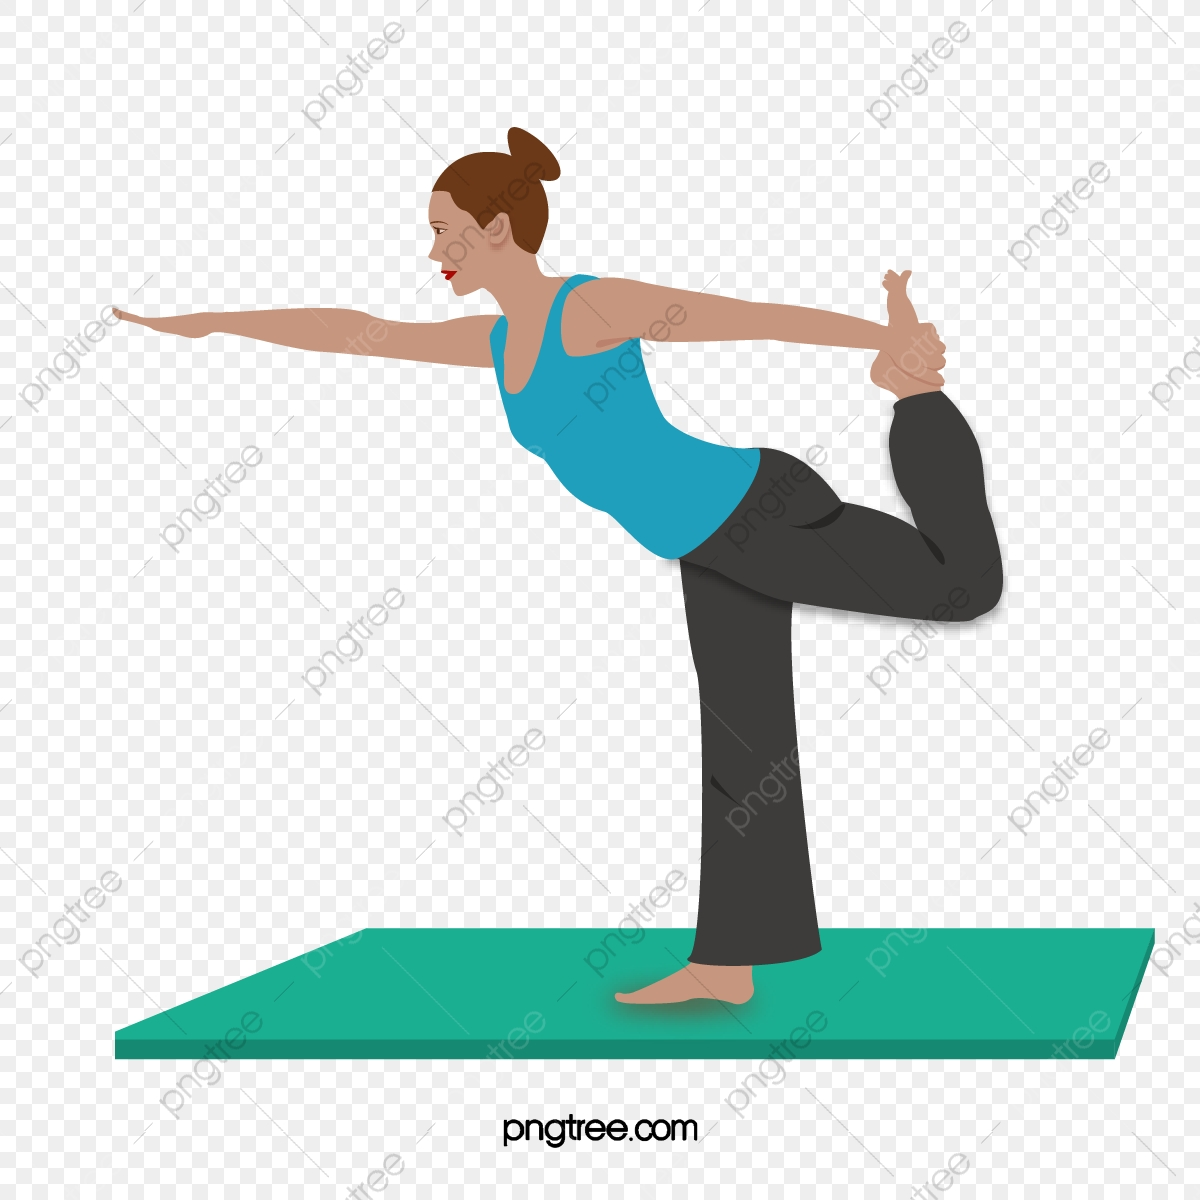 Yoga Teacher Of Vector Cartoon Sports Characters Yoga Day Character Cartoon Yoga Png And Vector With Transparent Background For Free Download